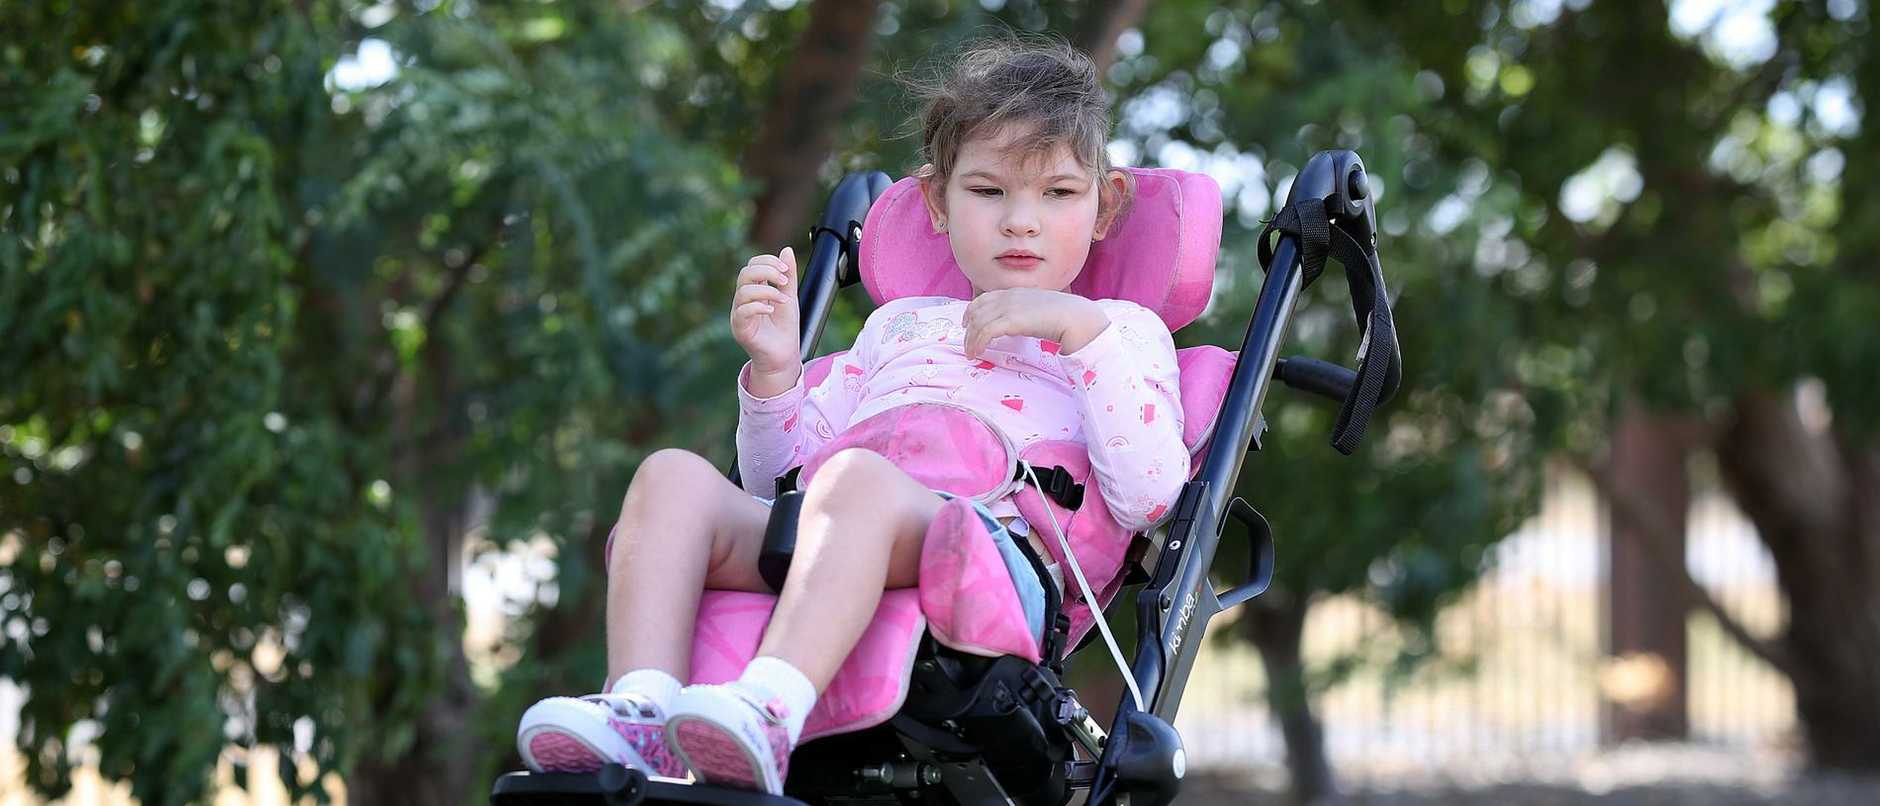 A girl who suffered brain damage at birth has been granted more than $9 million in compensation after her mother sued a hospital for delays in her delivery.